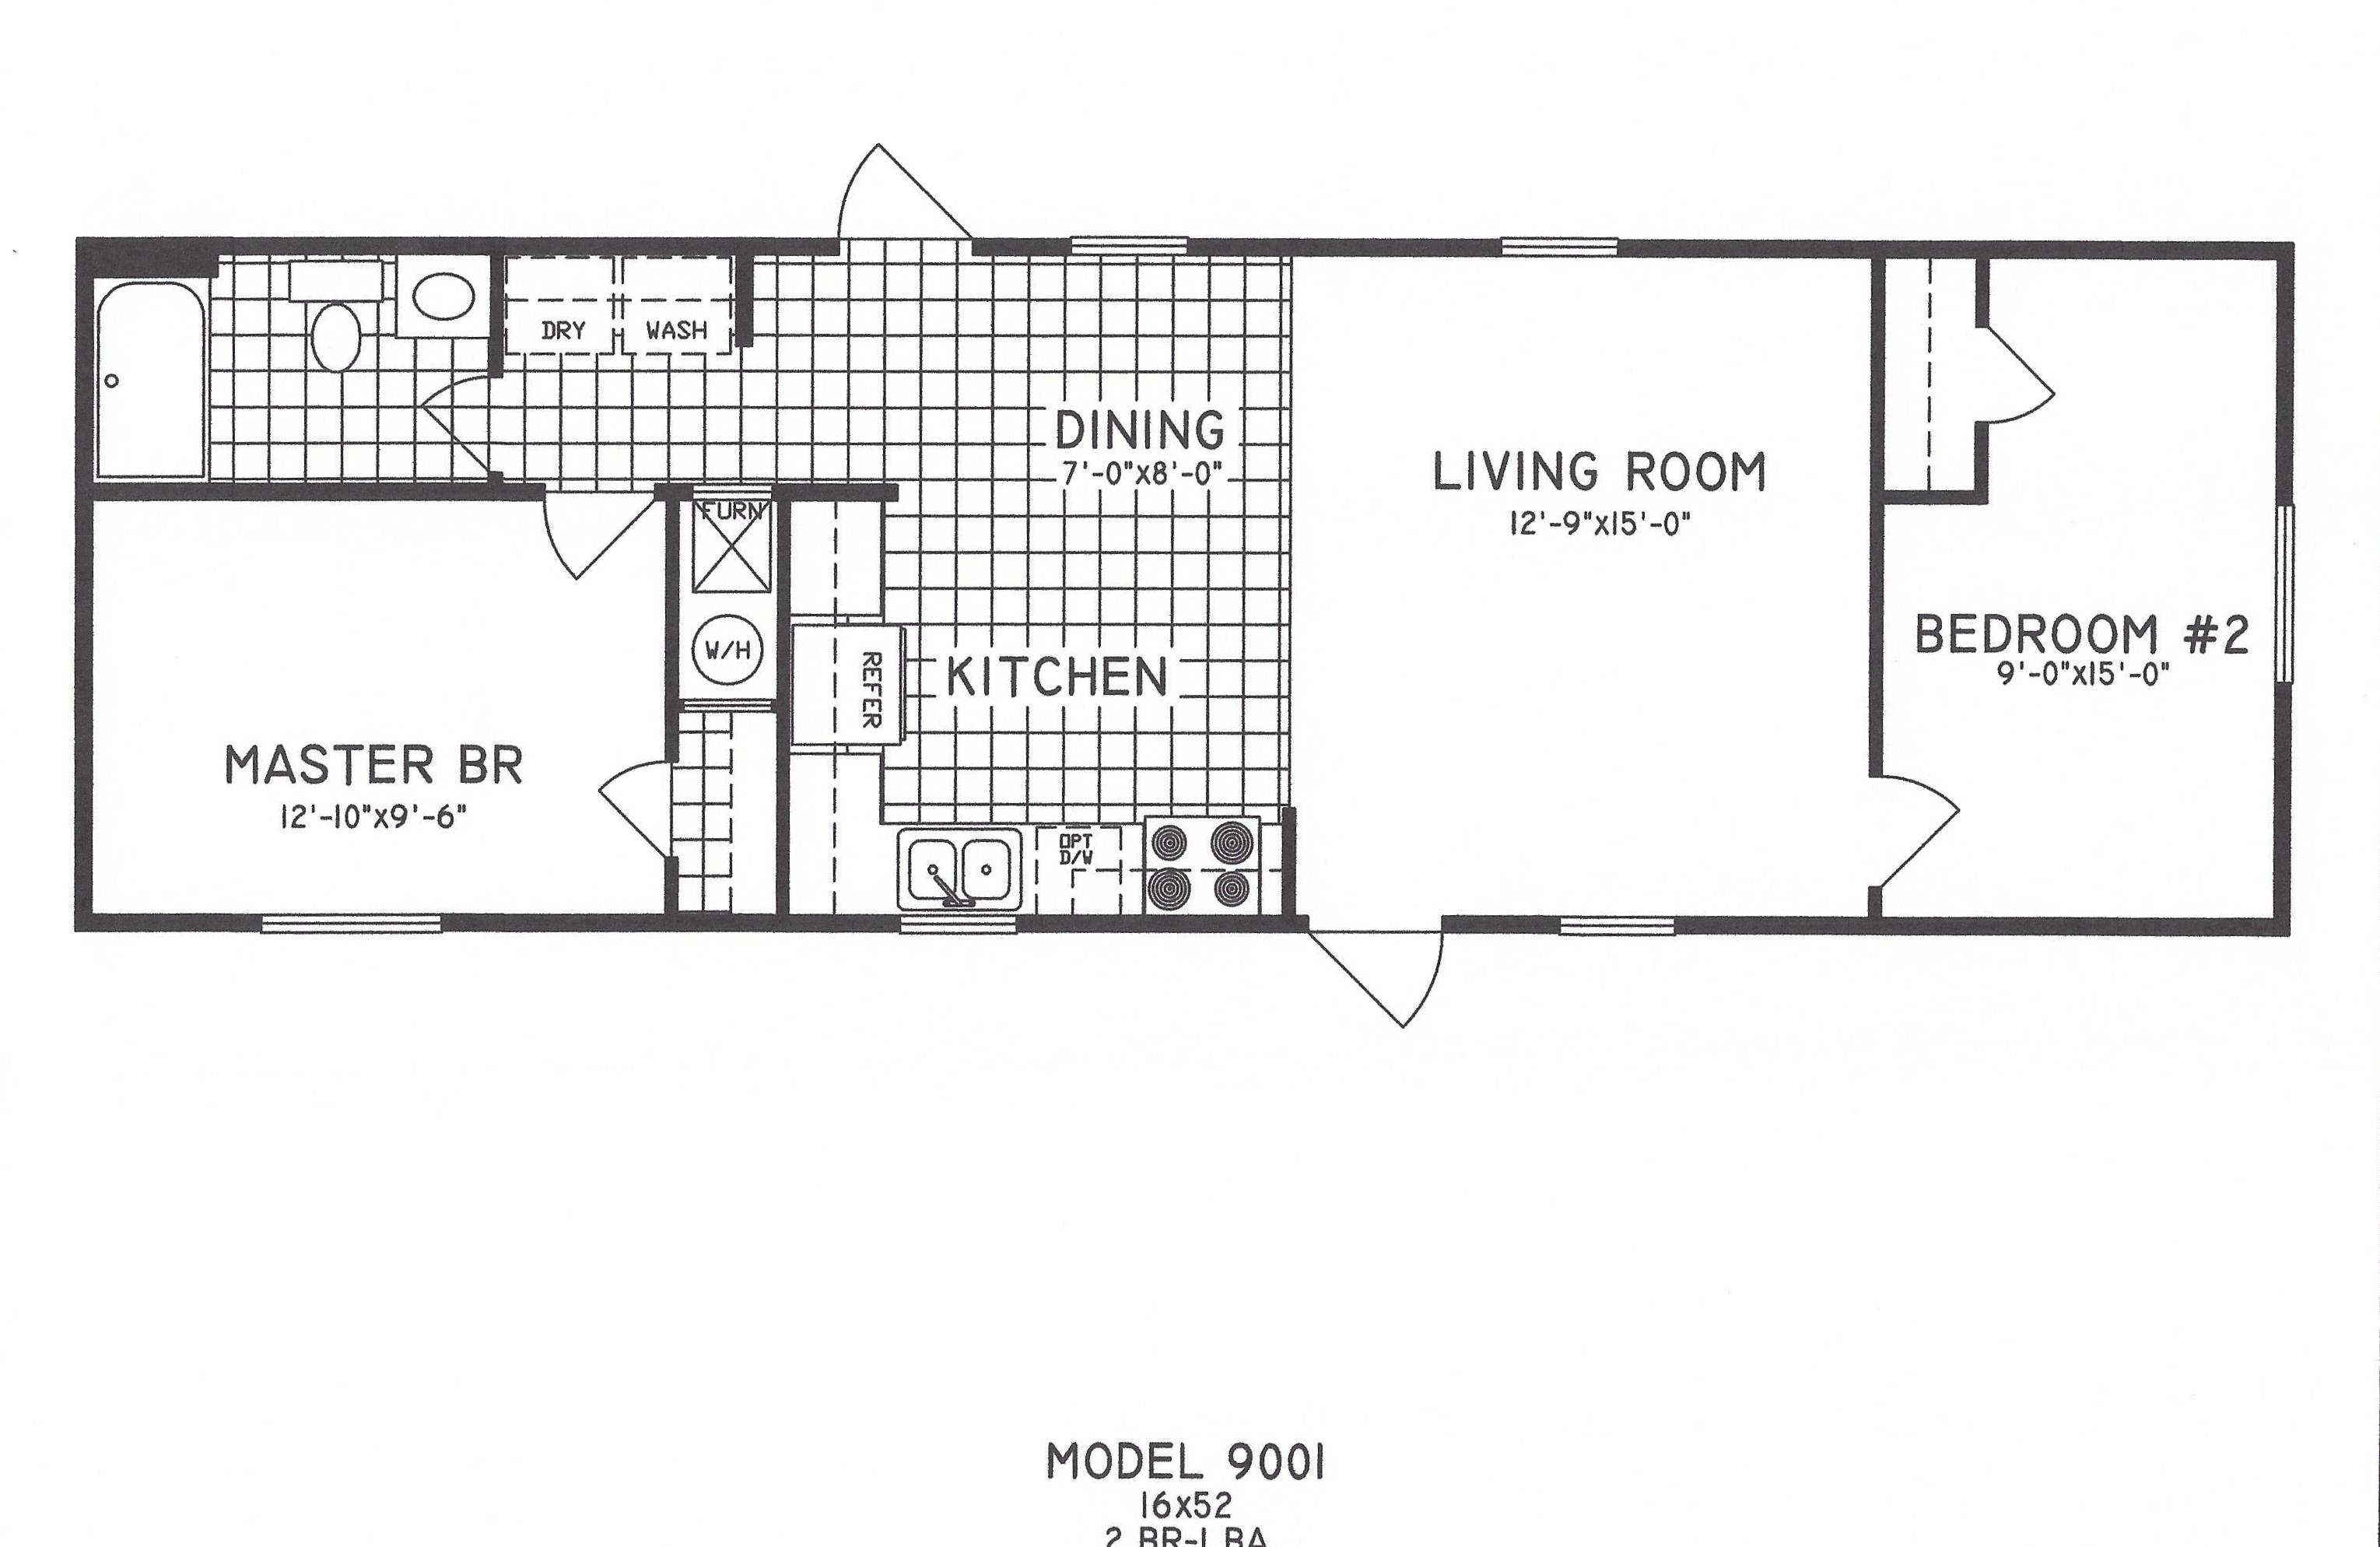 2 bedroom floor plan c 9001 hawks homes manufactured for 2 bedroom mobile home floor plans